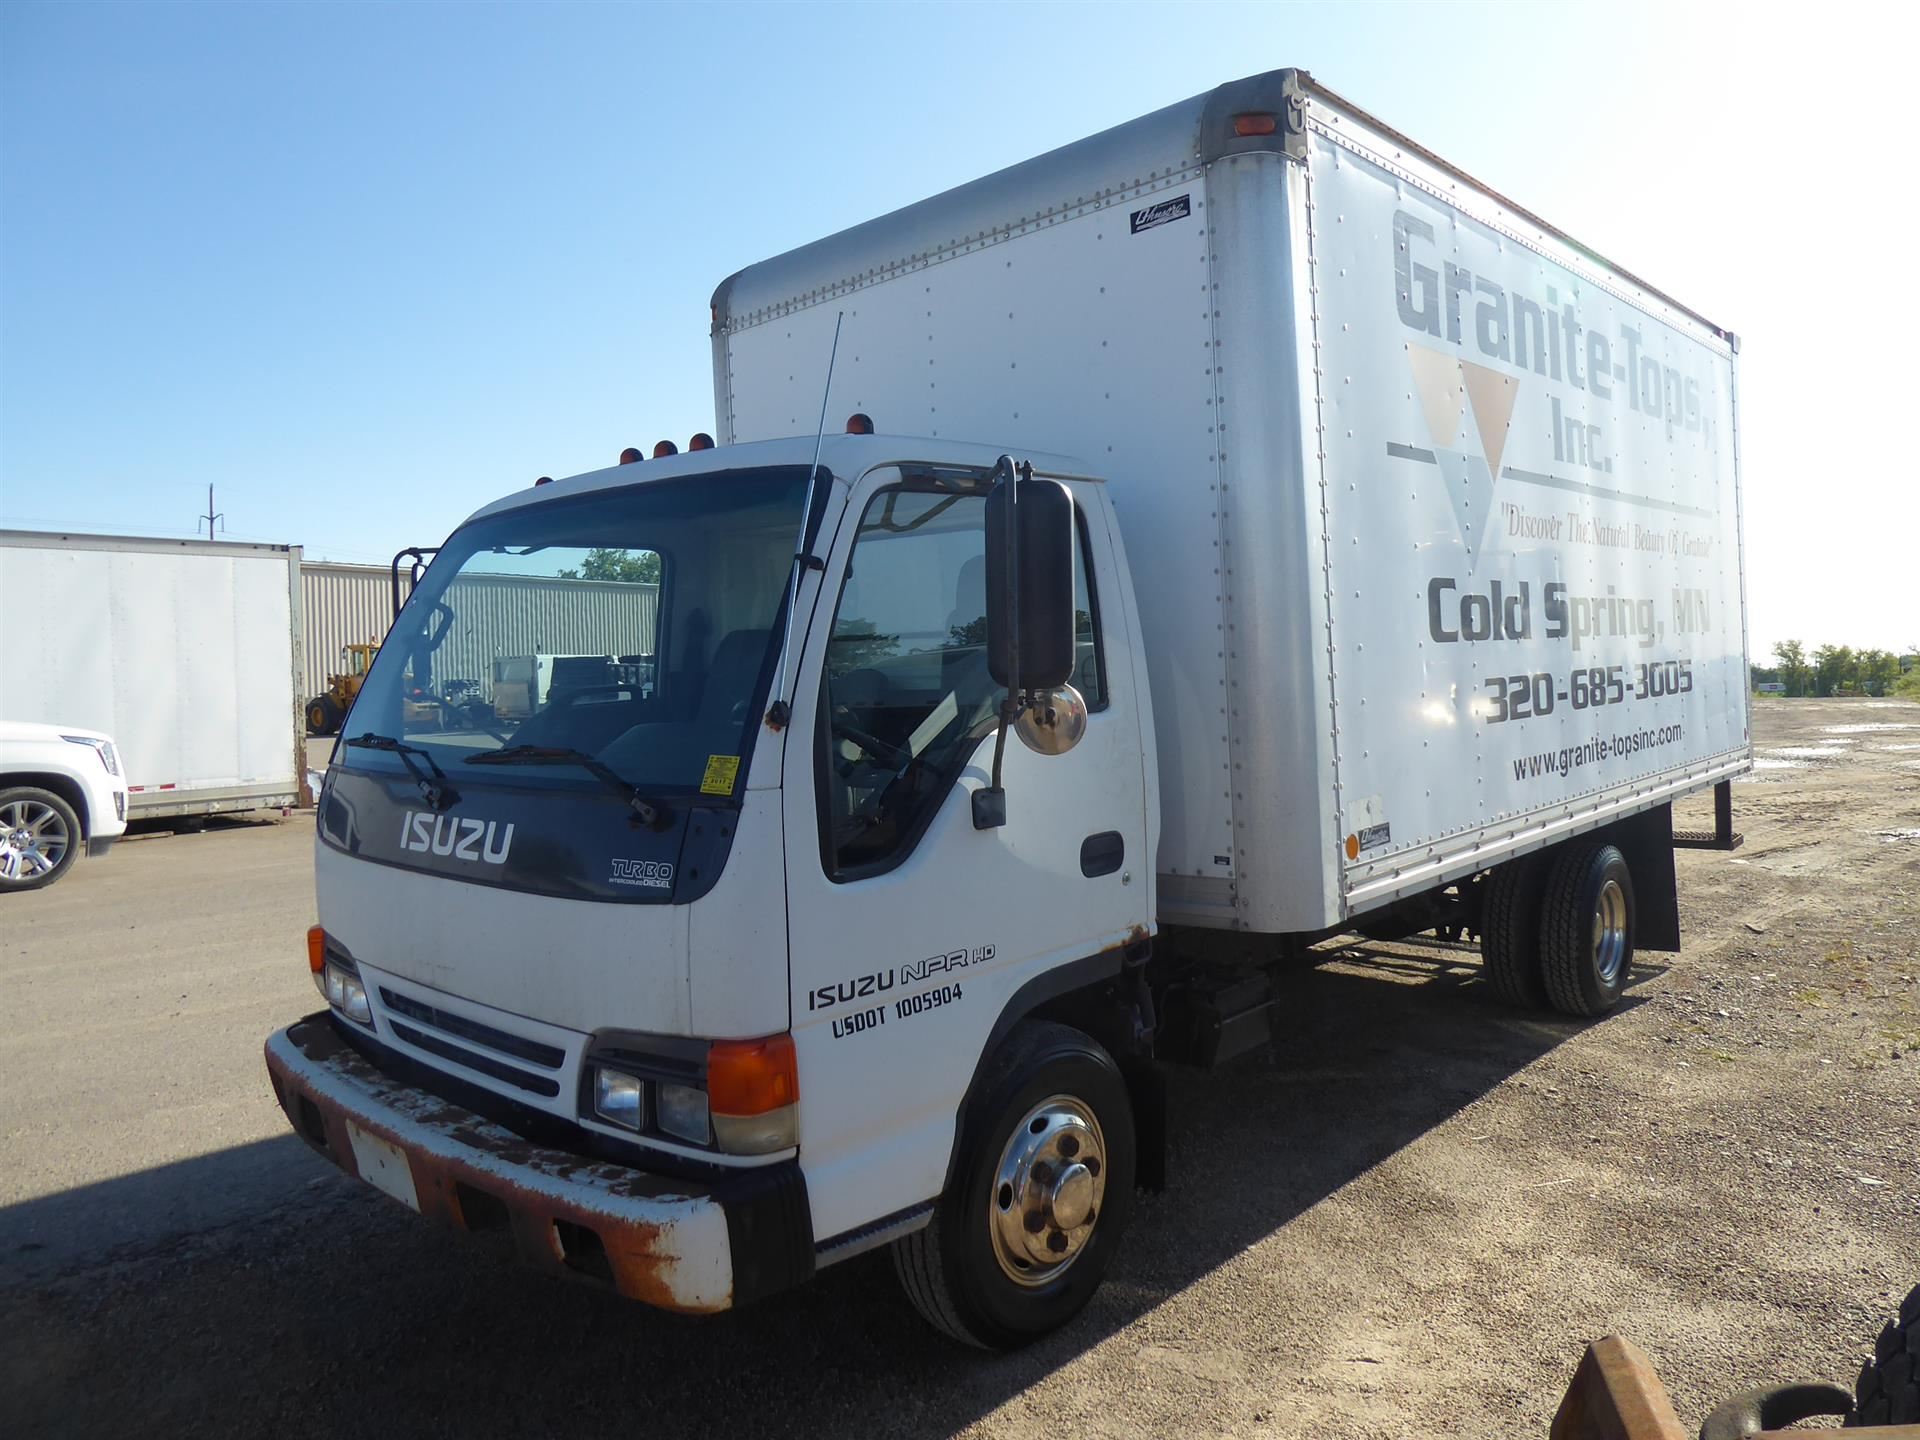 1999 Isuzu npr hd for sale-59290833